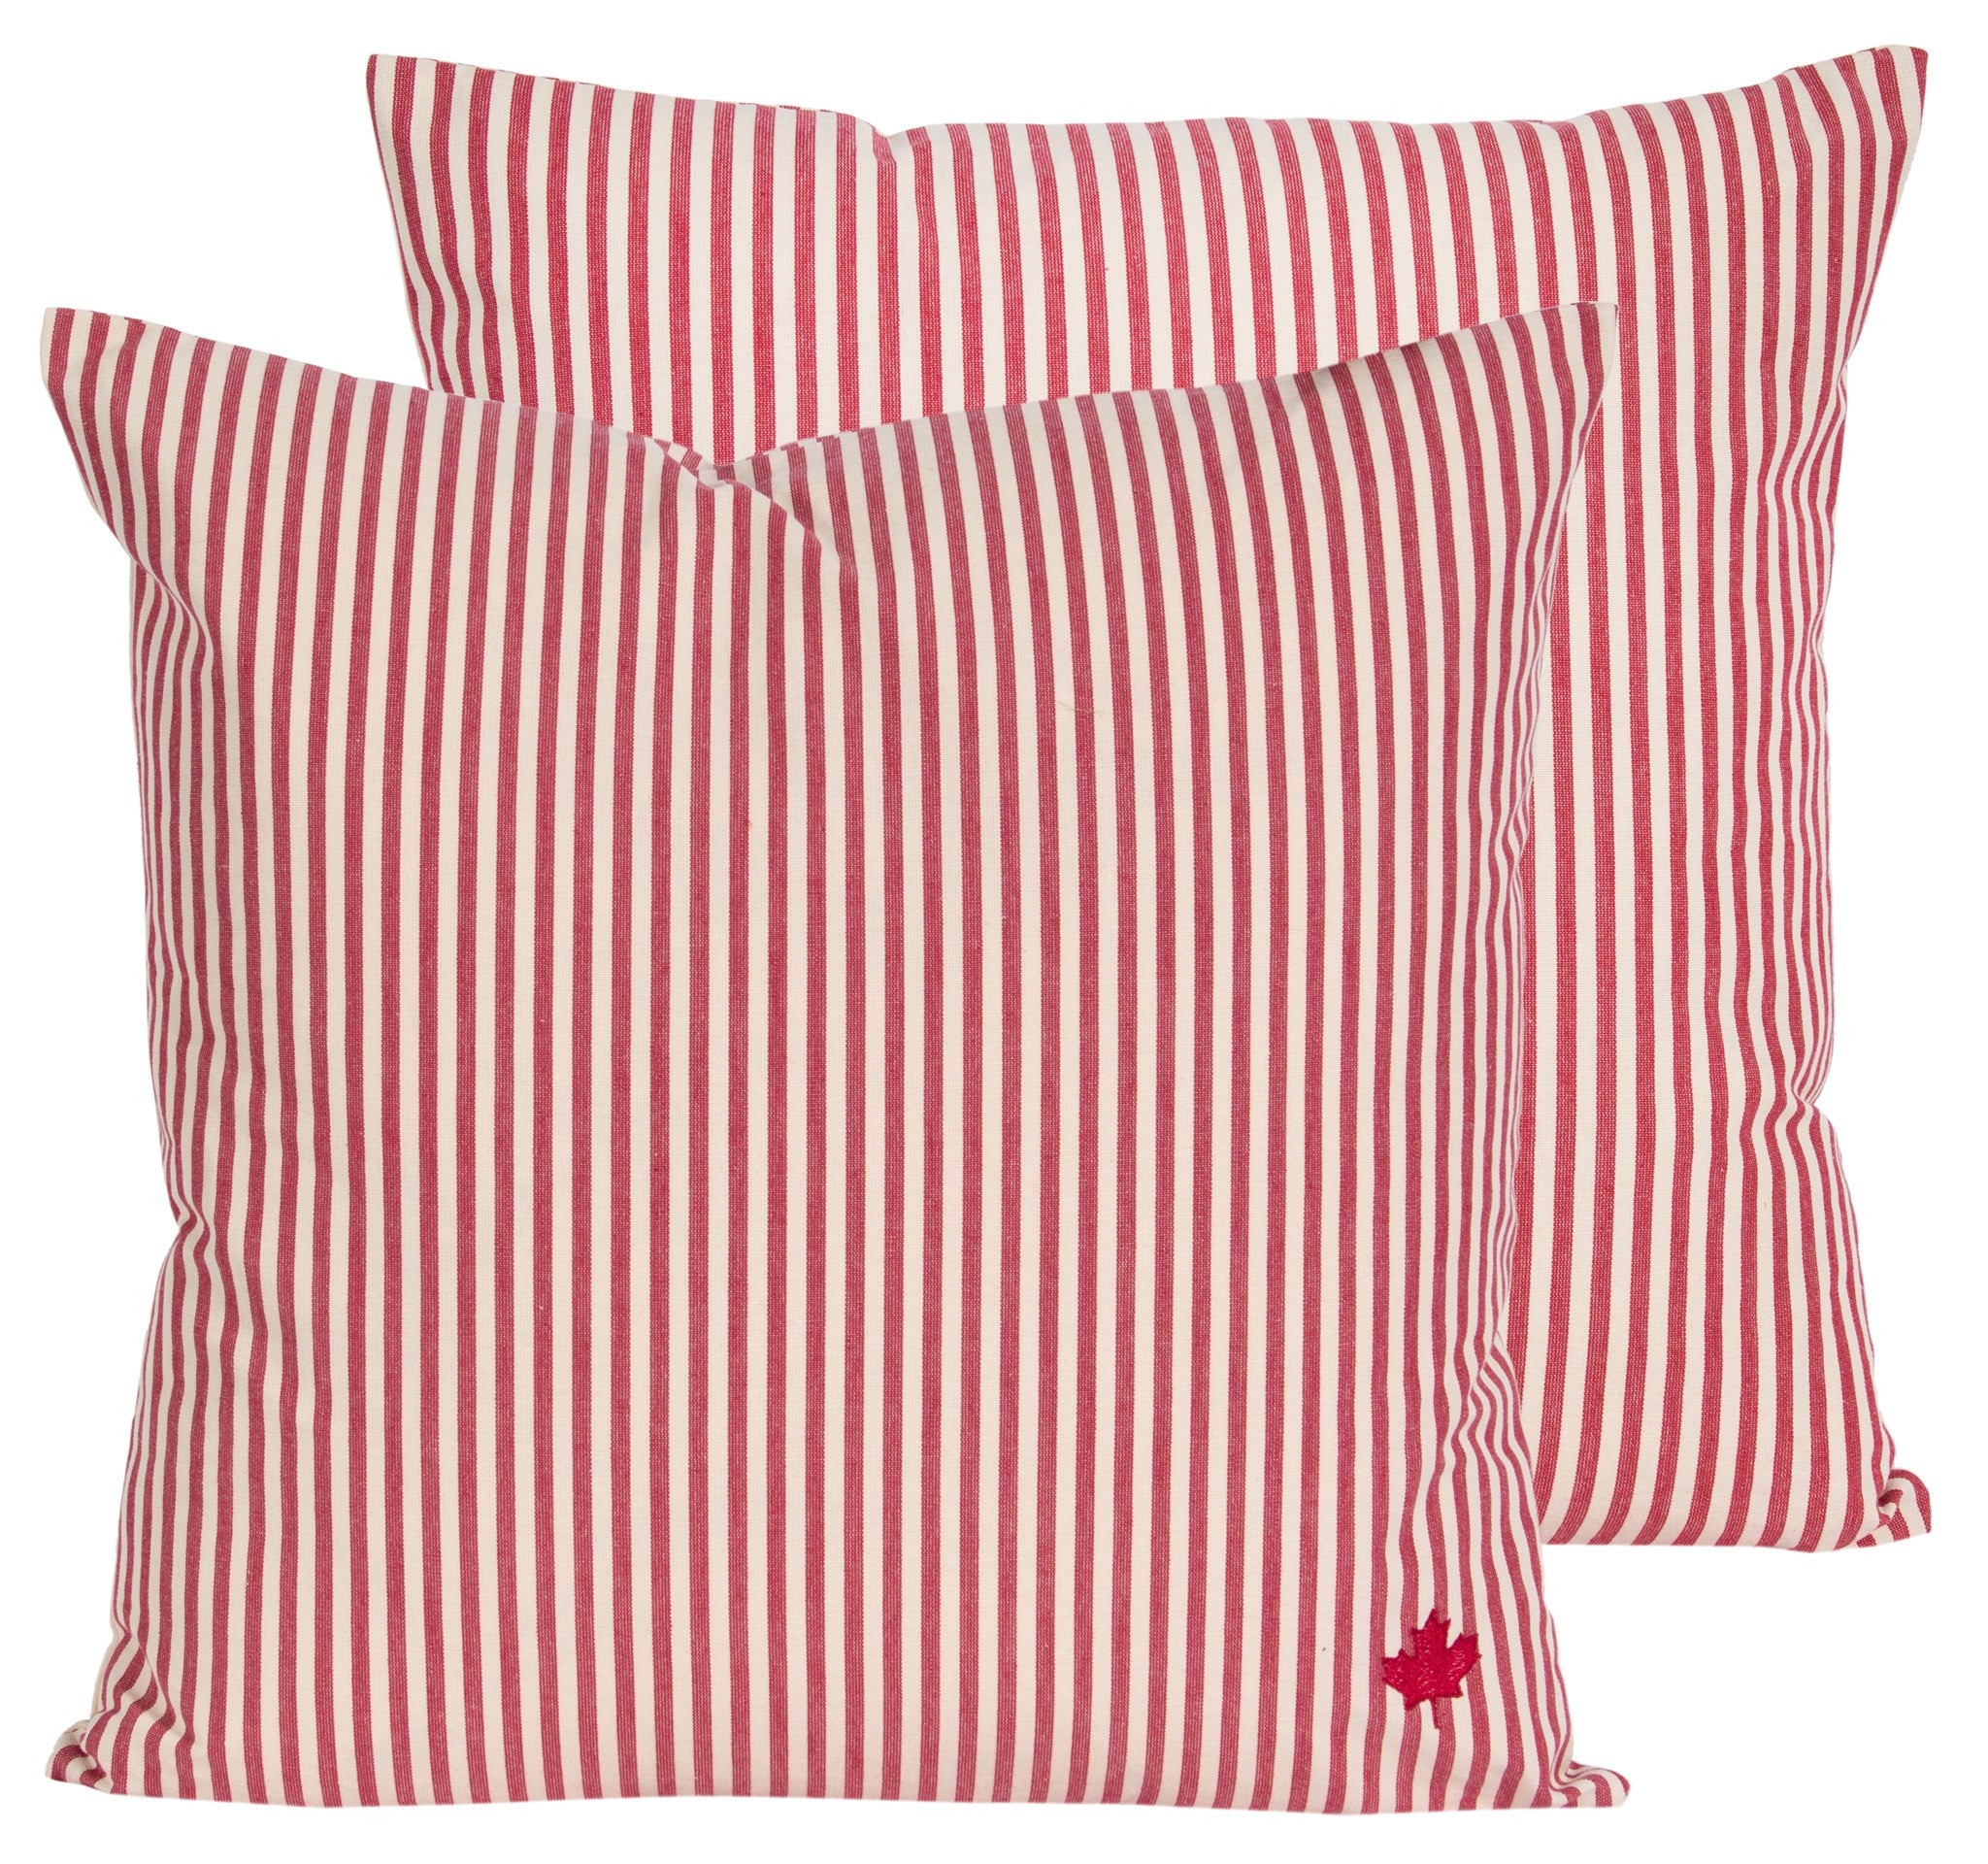 The Maple Leaf Striped Pillow